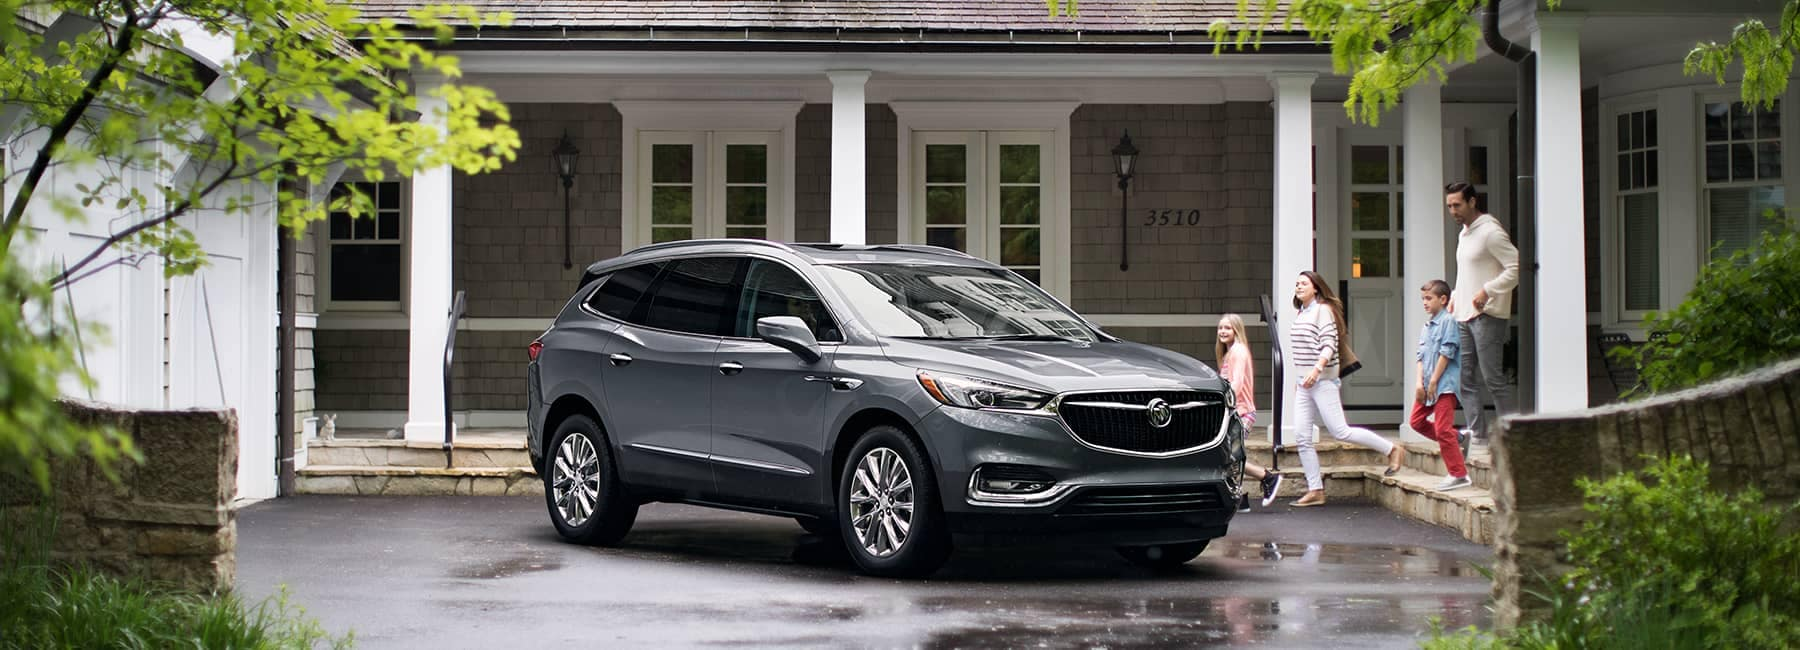 Grey 2020 Buick Enclave in Front of a House_mobile